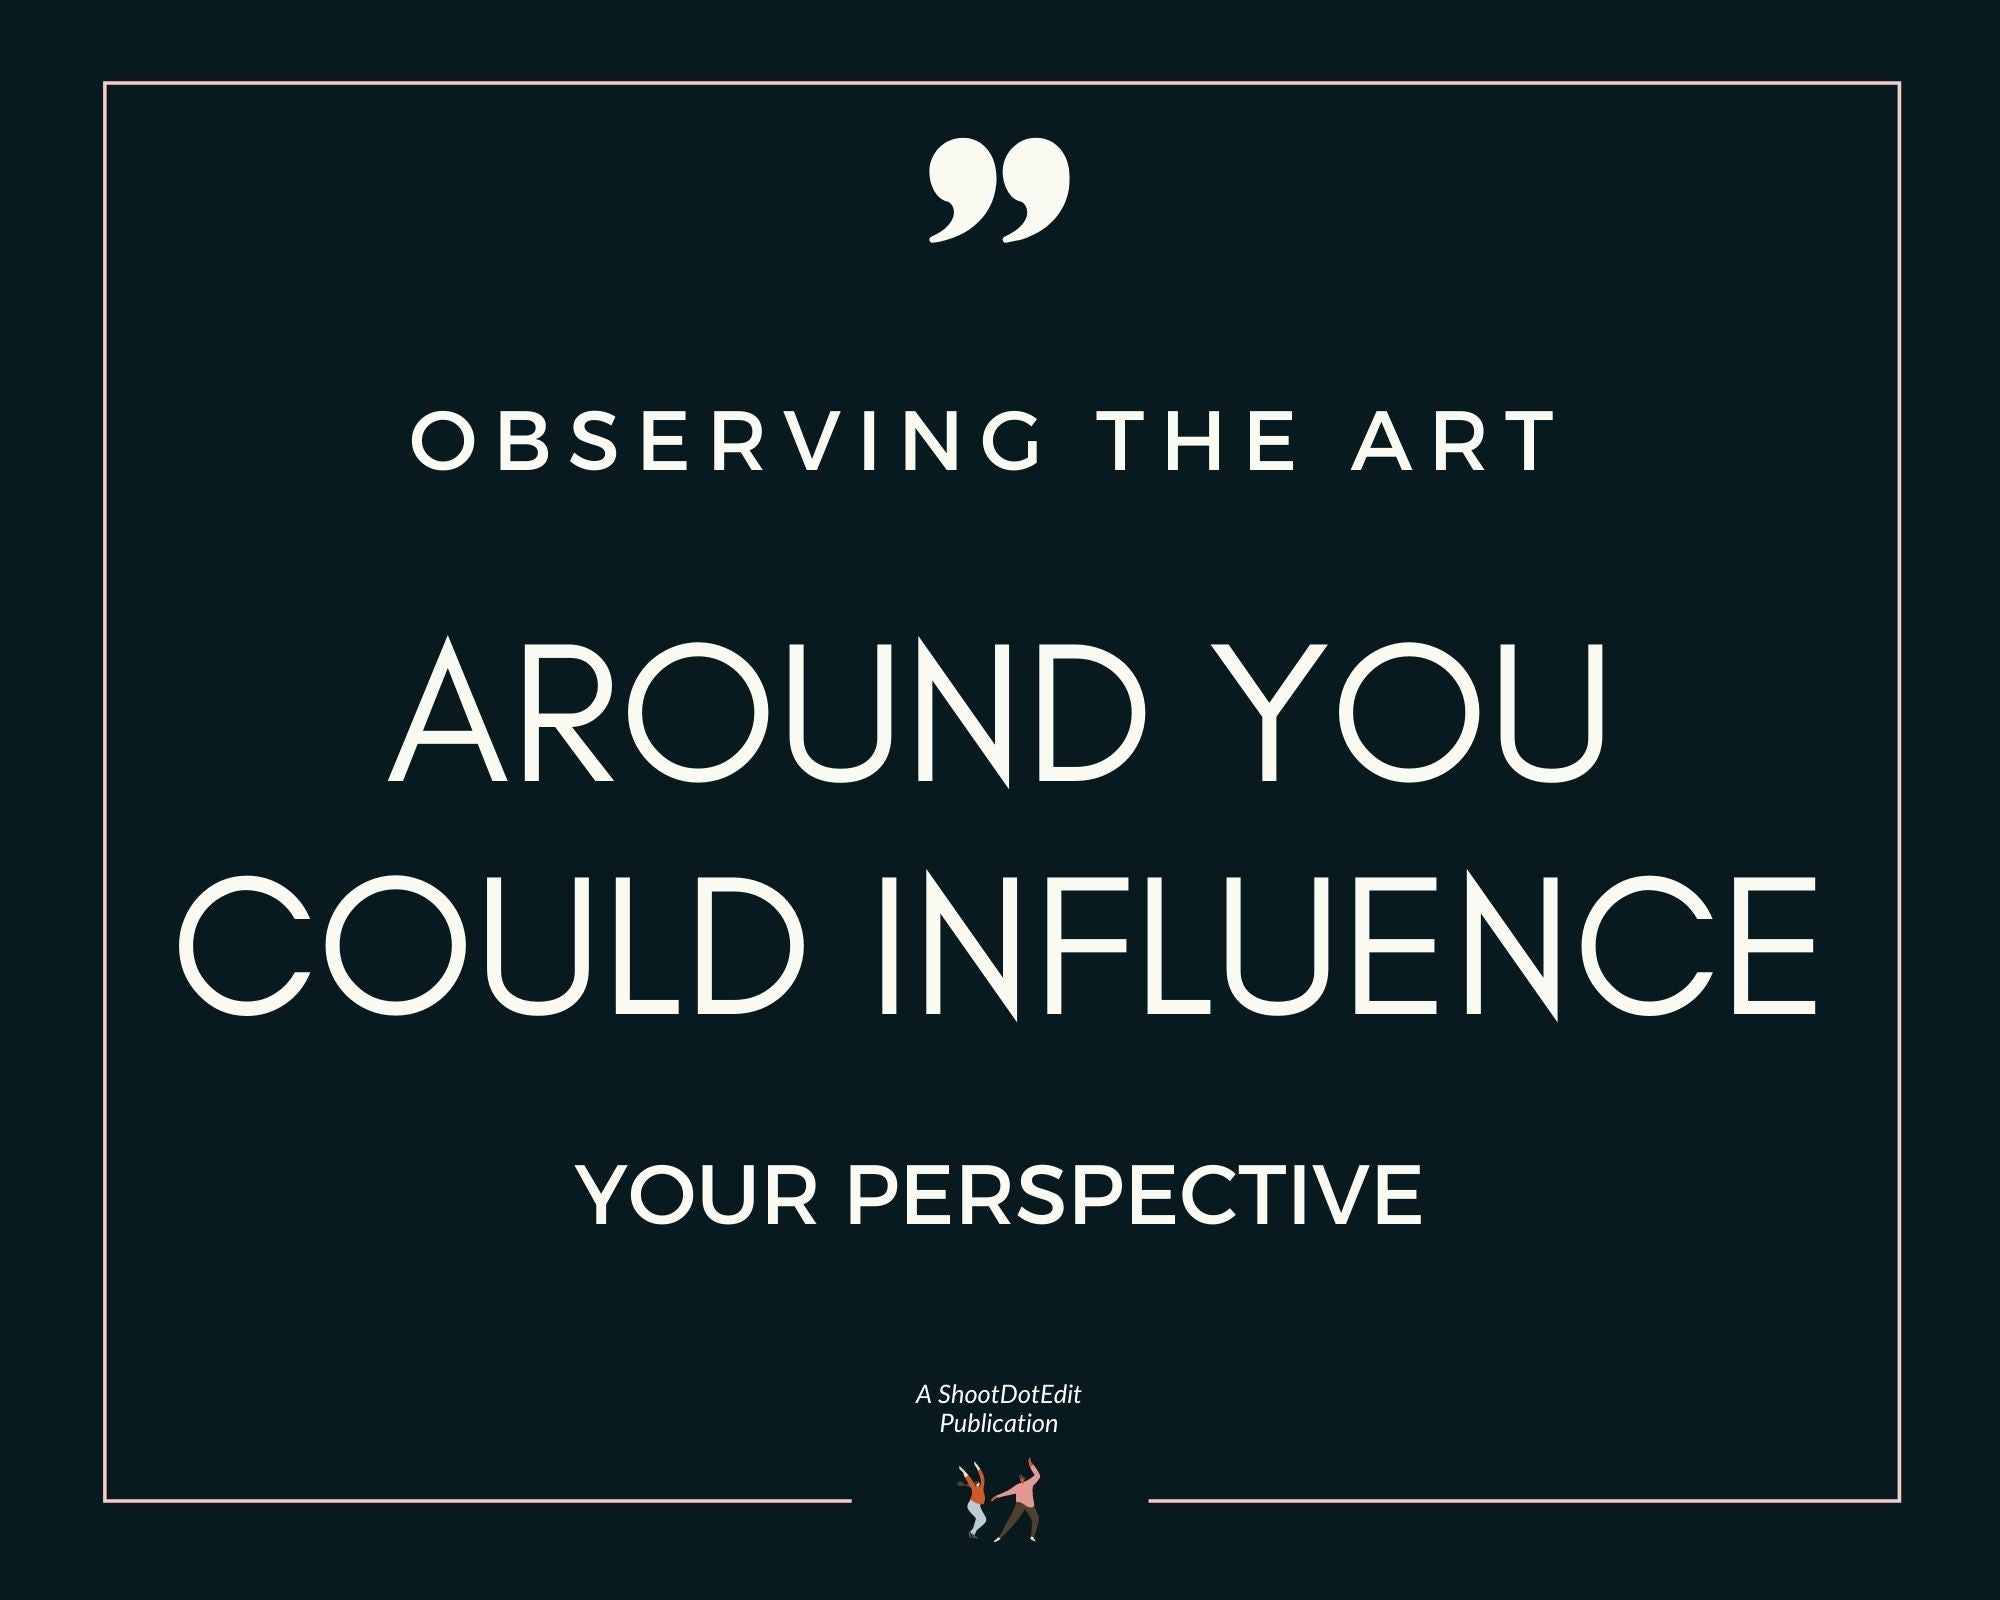 Infographic stating observing the art around you could influence your perspective